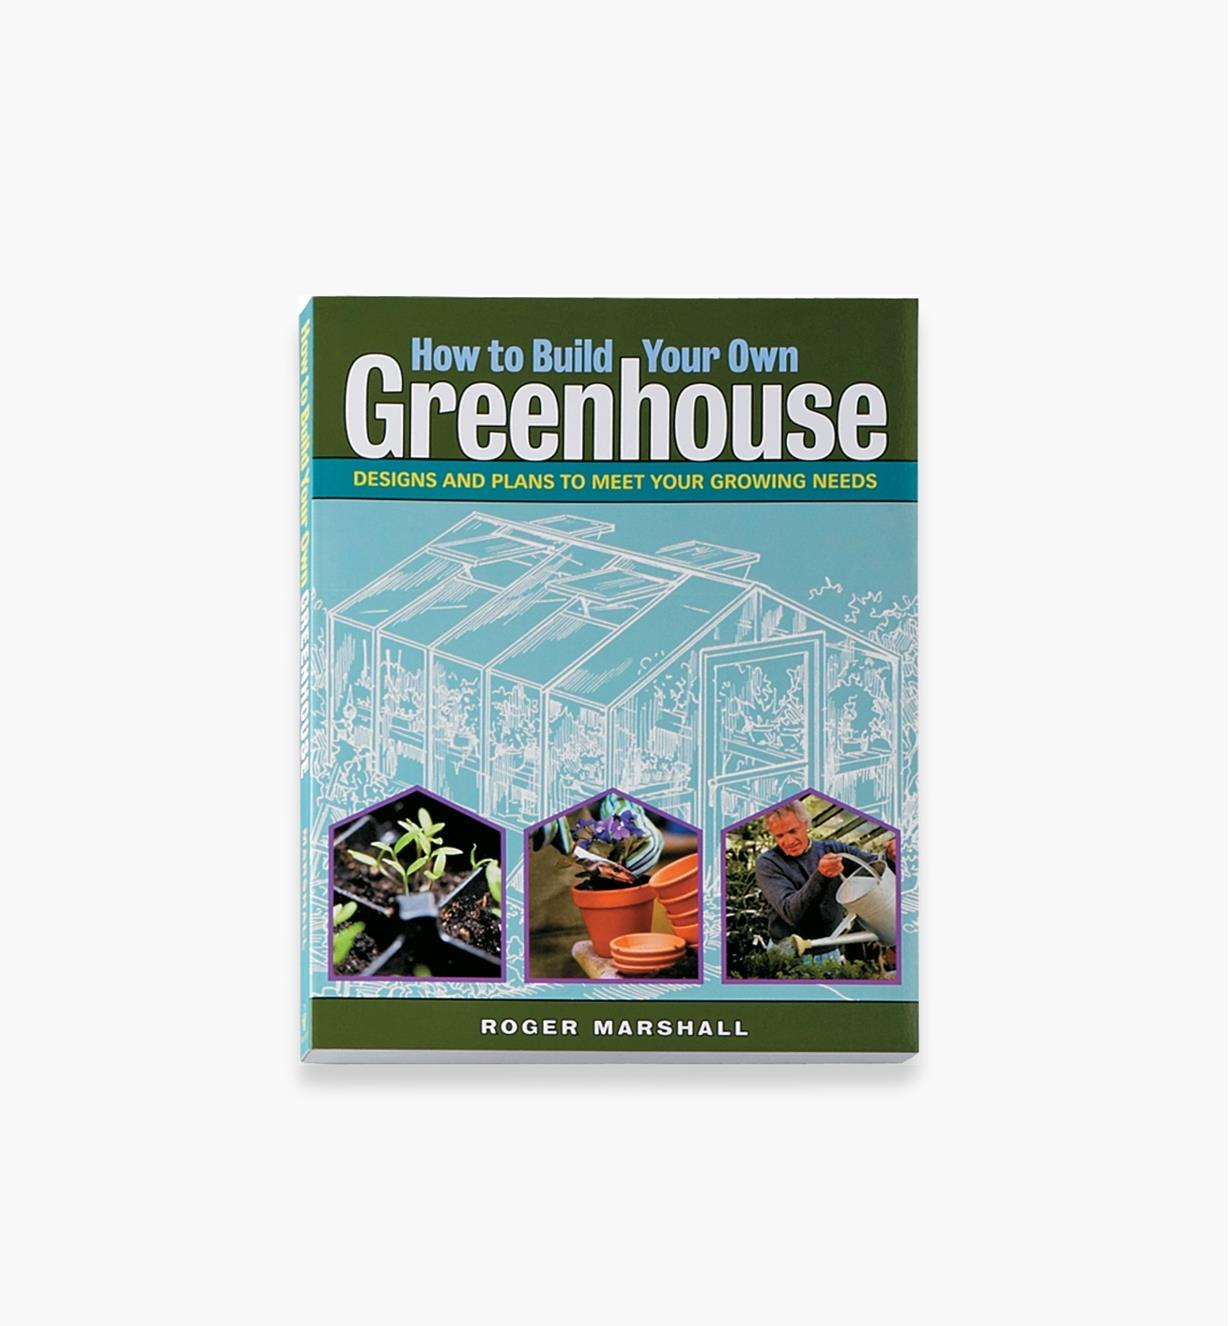 LA649 - How to Build Your Own Greenhouse